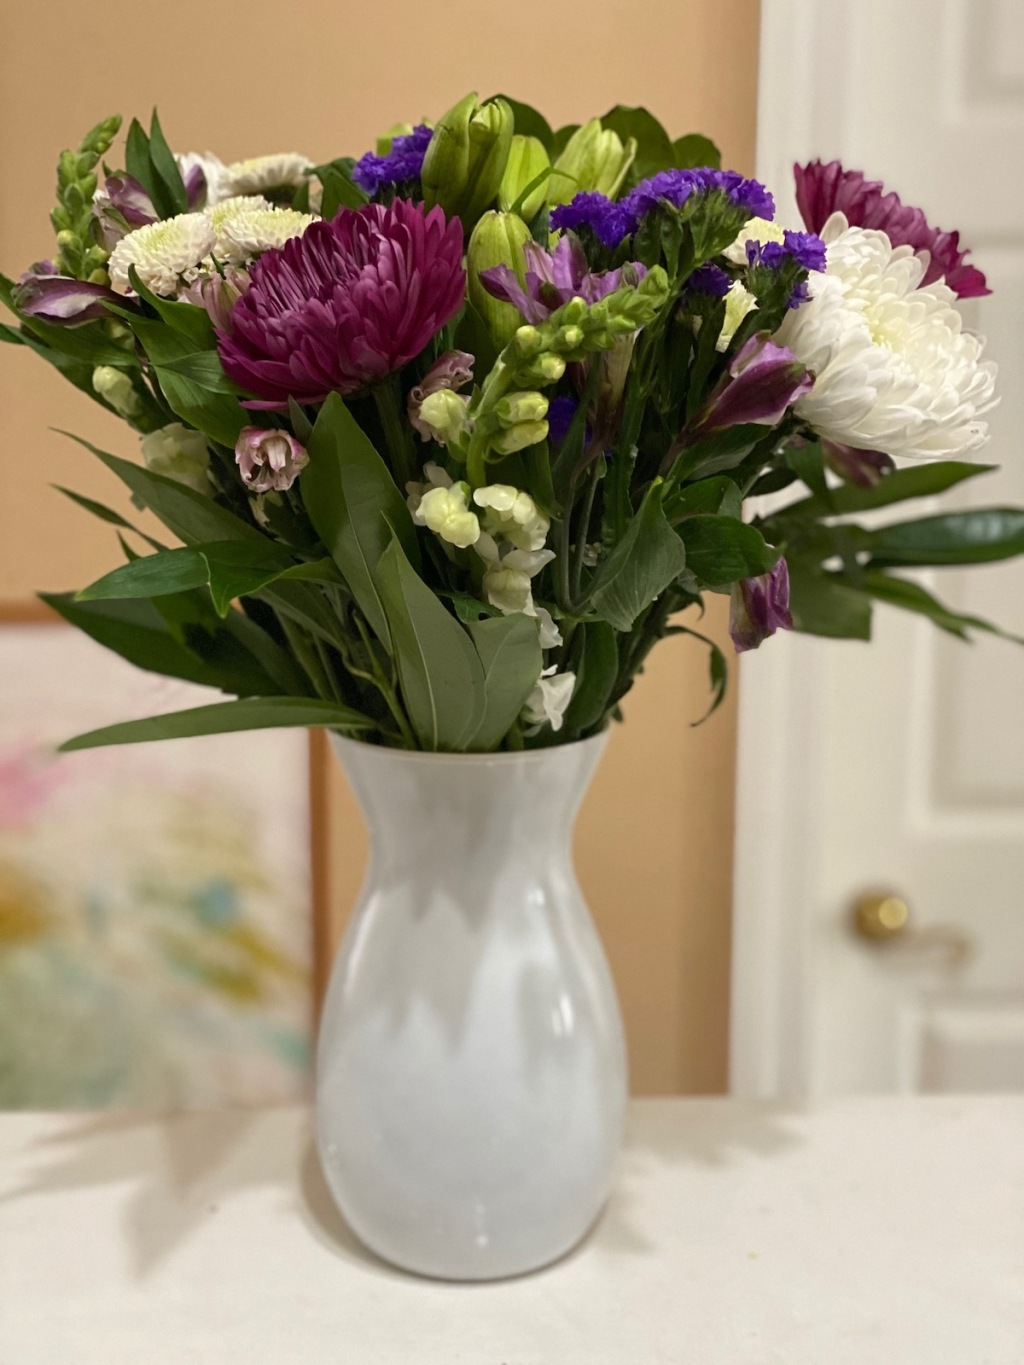 bouquet of flowers sitting in vase on counter